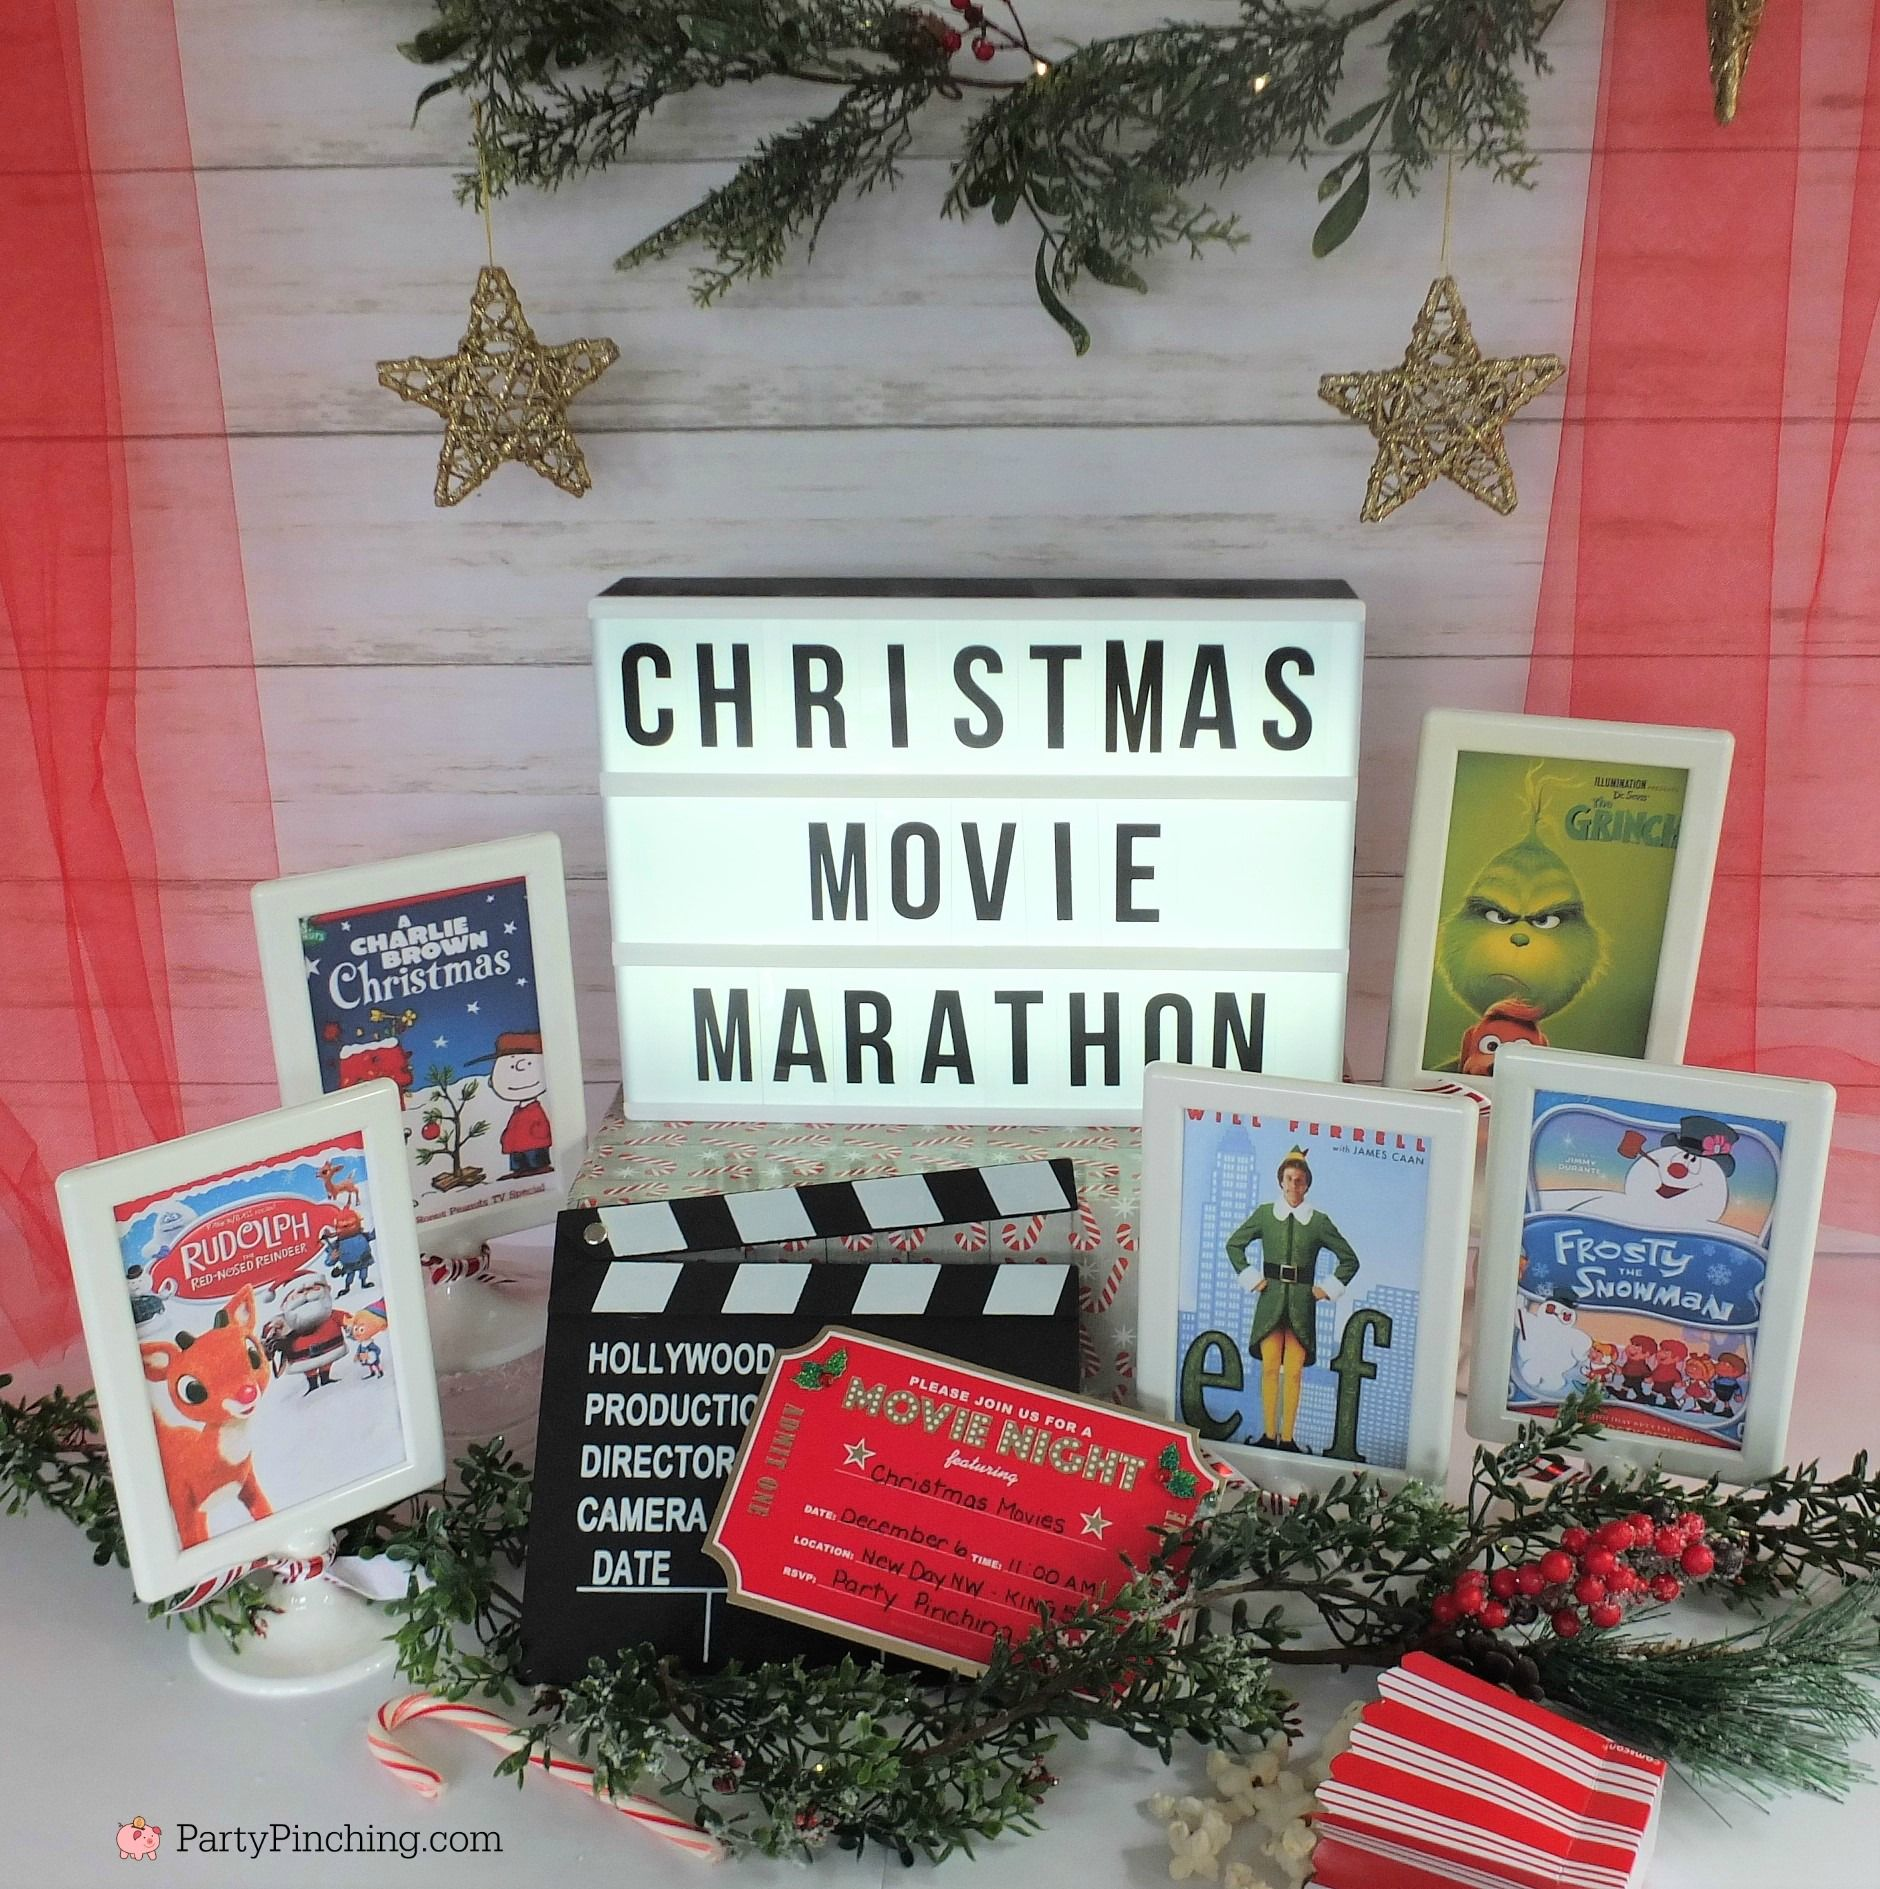 Christmas Movie Marathon Christmas Movie Night Party Ideas Rudolph Treats Bumble Abomin Charlie Brown Christmas Movie Christmas Movies Christmas Movie Night